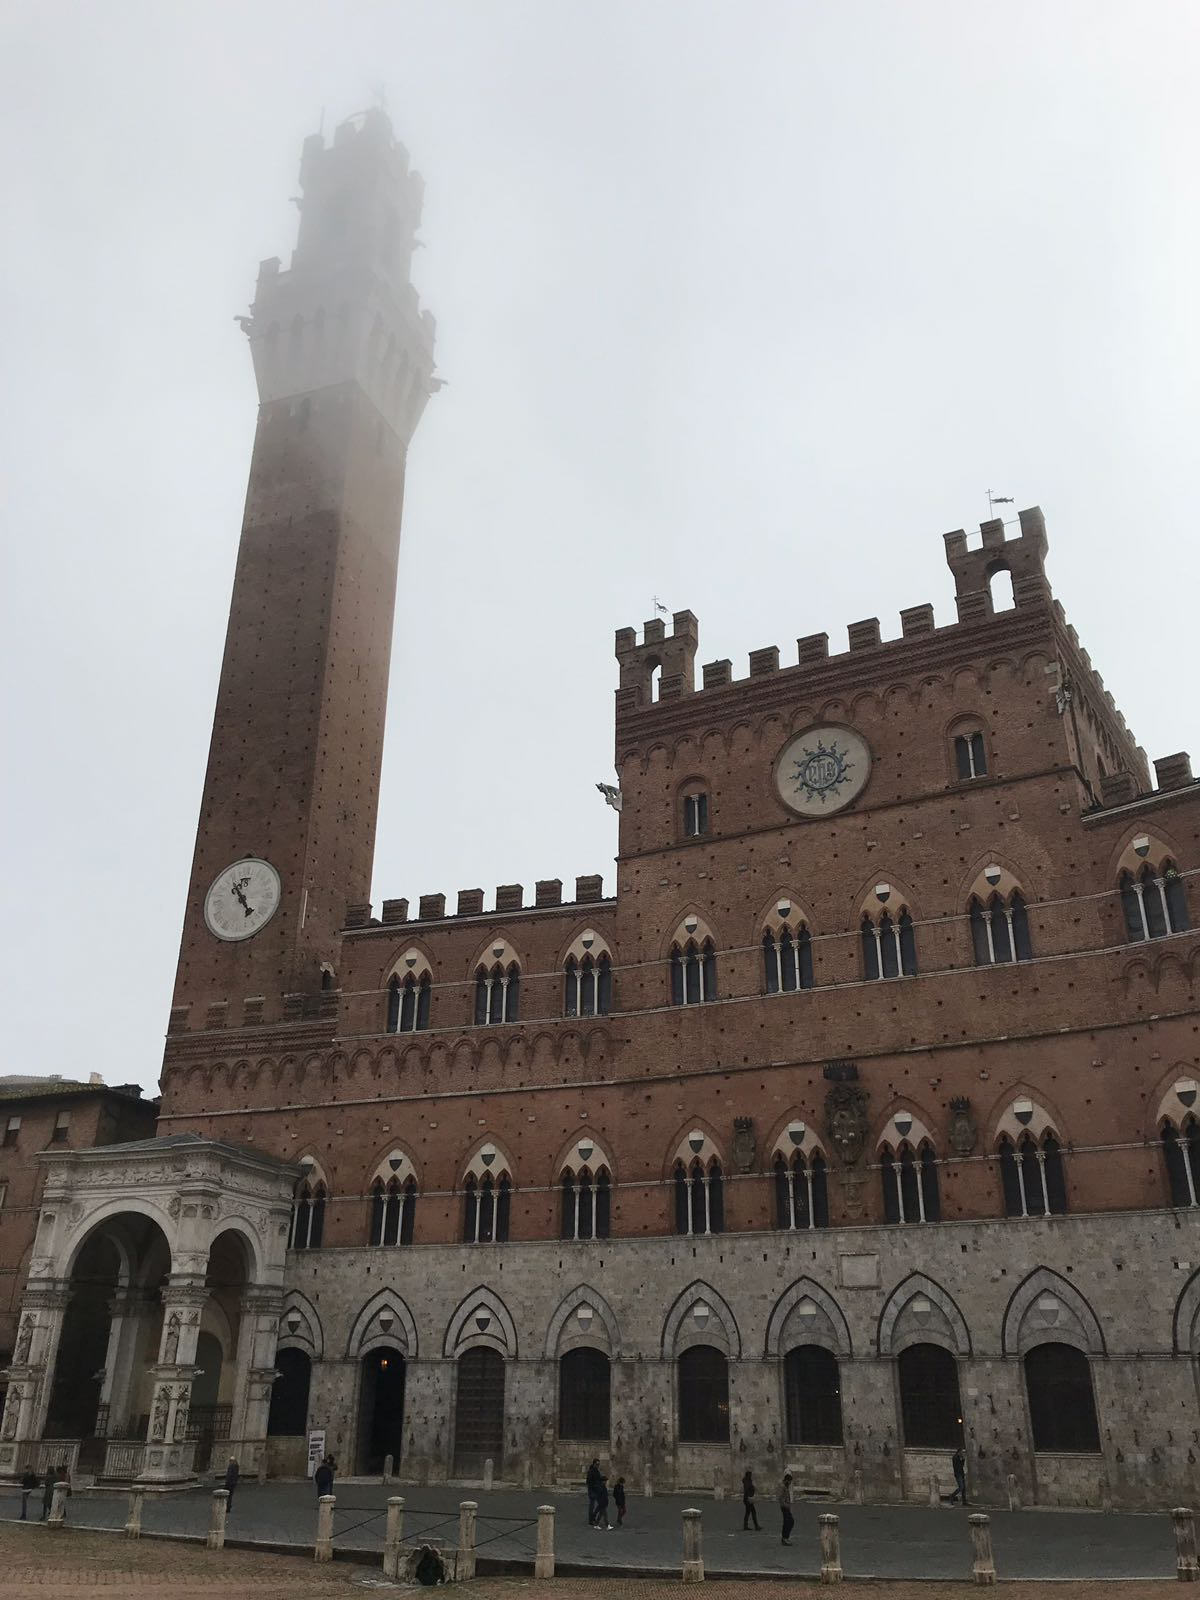 Palazzo del Pubblico with a grey misty background and the top of its tower lost in the mist